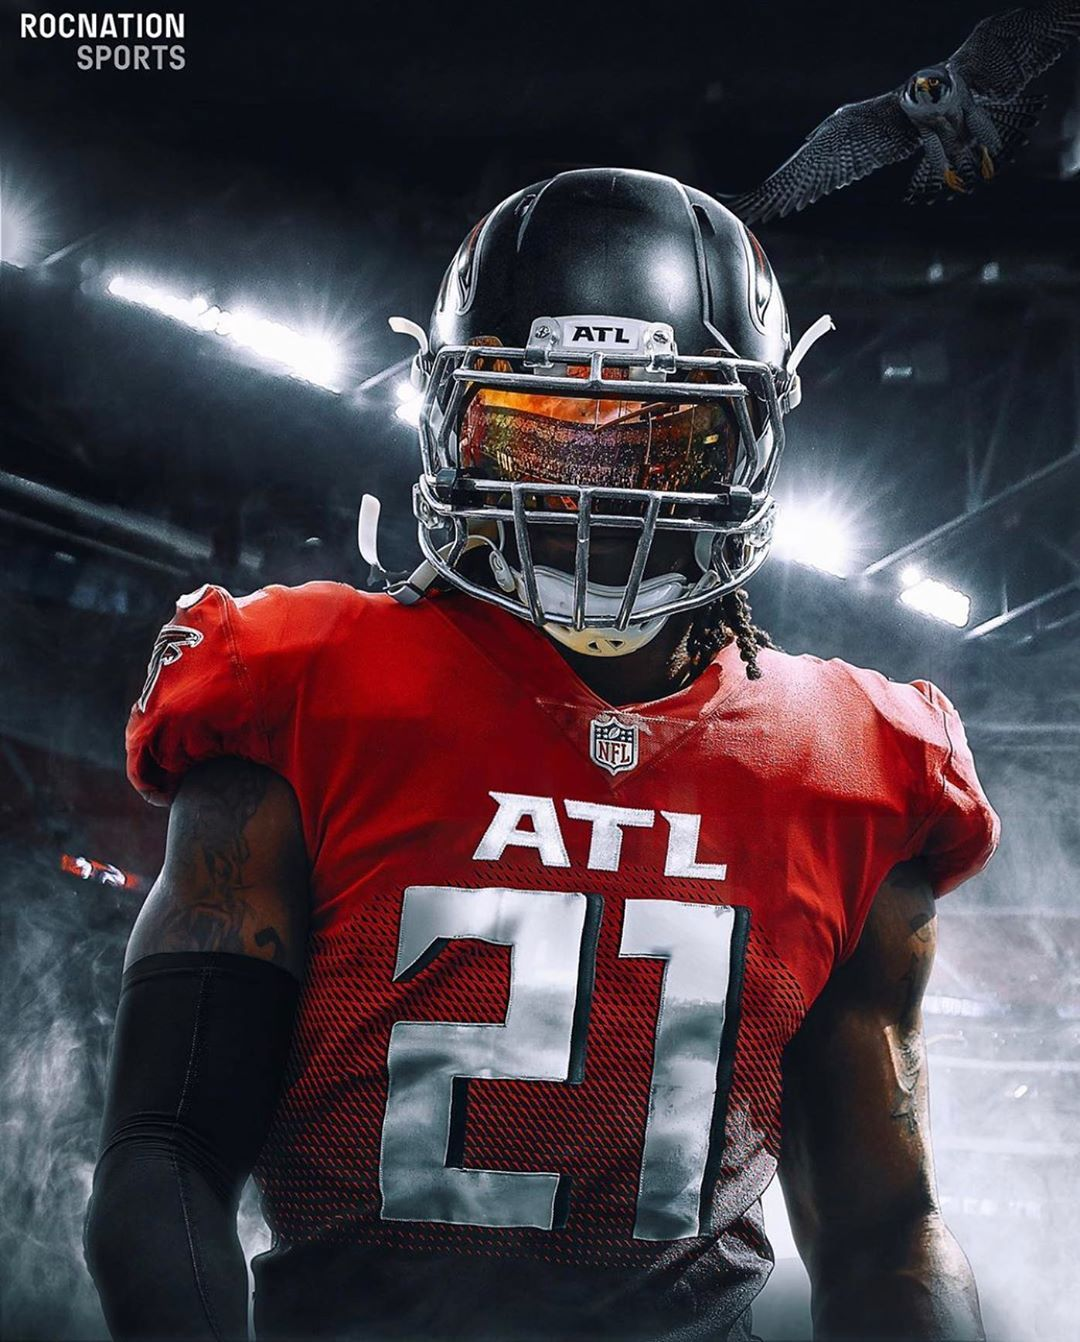 Atlanta Falcons On Instagram Todd Gurley Chooses 21 Thoughts Tg4hunnid Riseup In 2020 Atlanta Falcons Football Atlanta Falcons Players Falcons Football